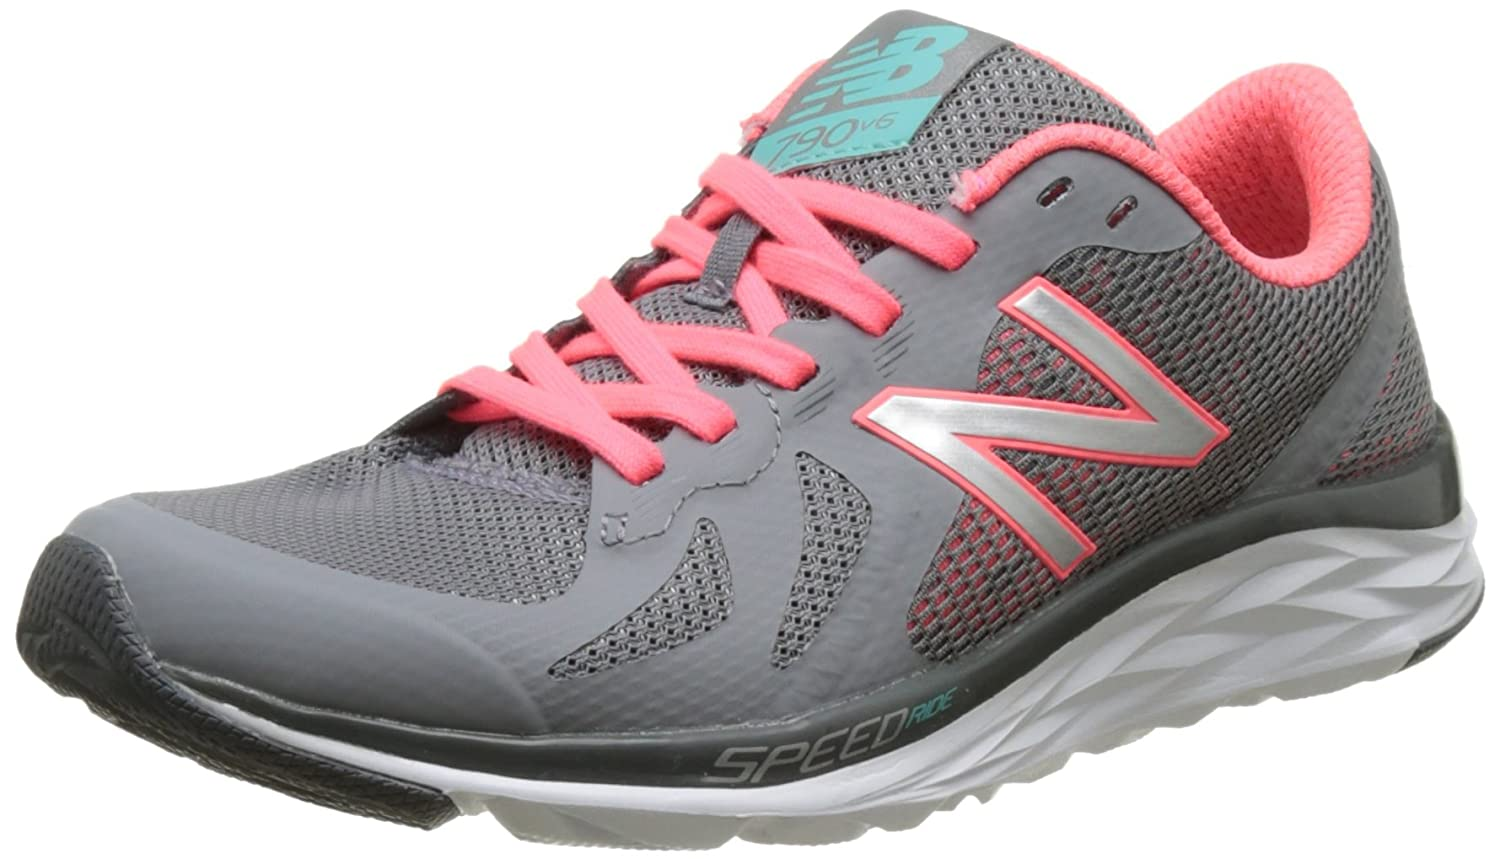 New Balance 8f20e Quality Top Price Shoes Dcb7a IHED29WY